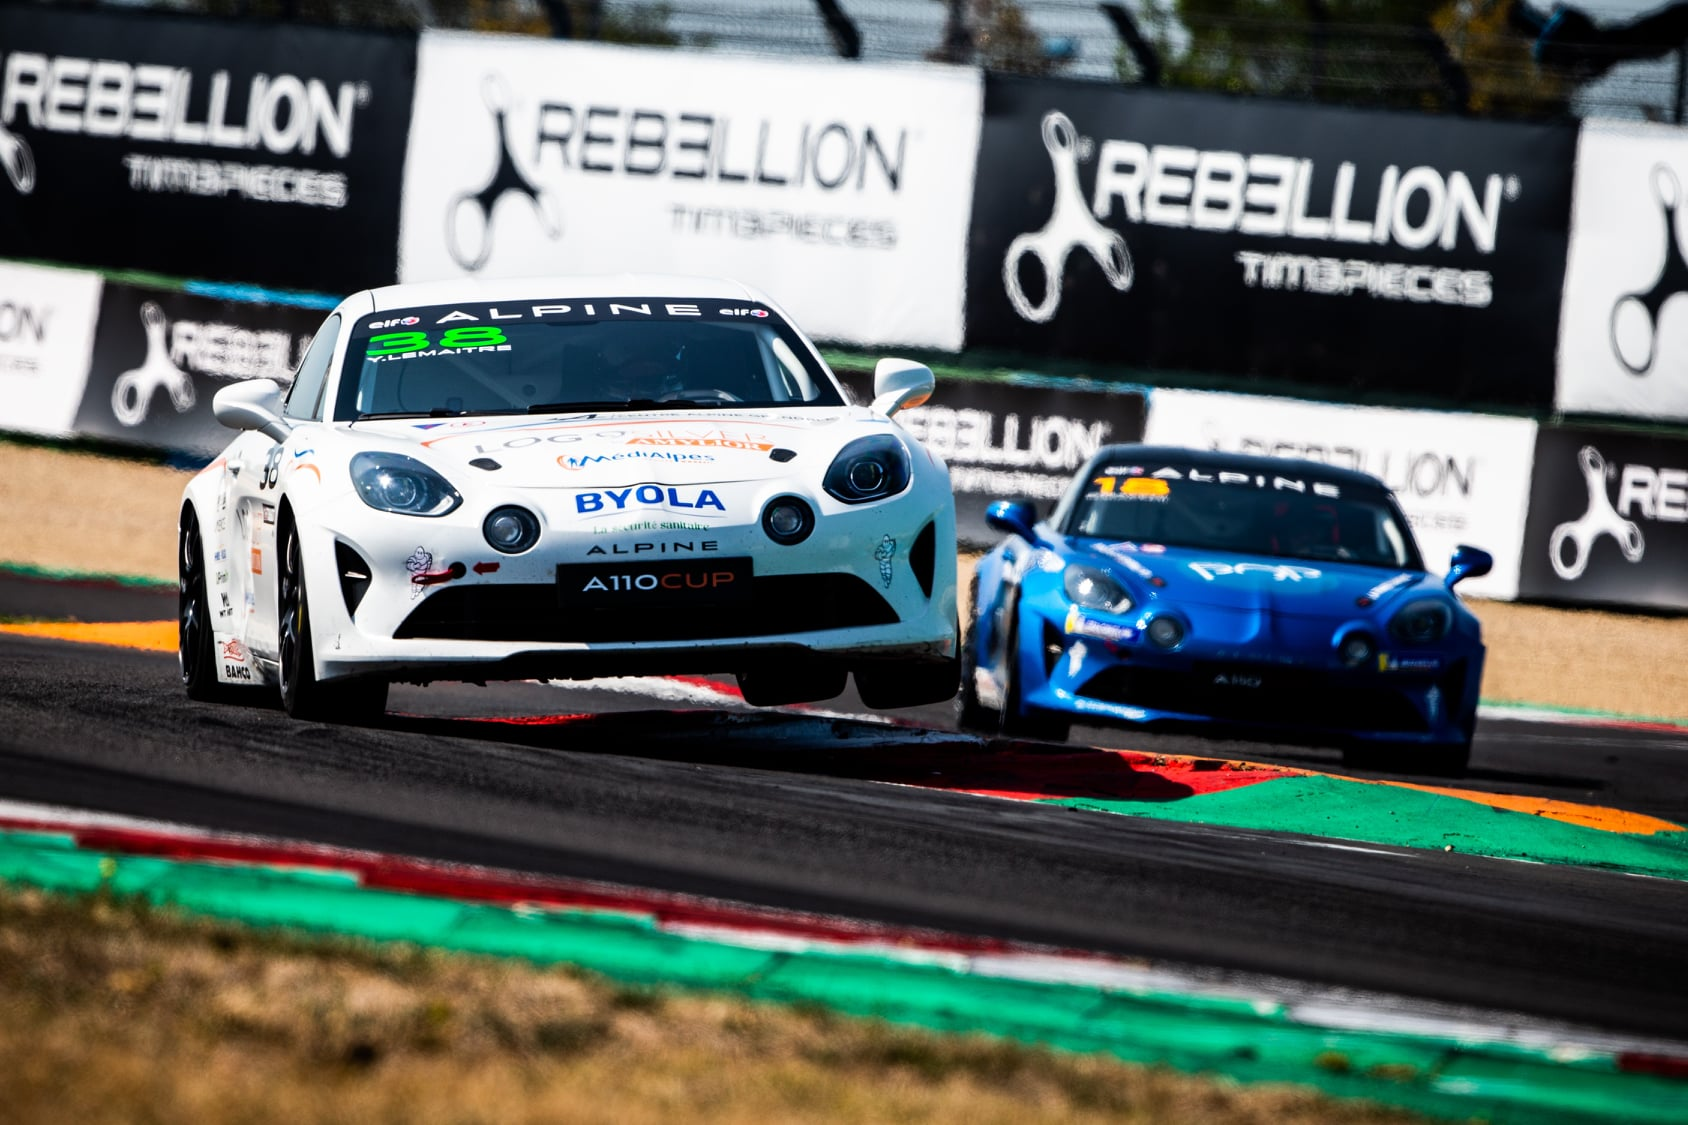 Alpine Elf Europa Cup 2020 Magny Cours A110 Cup 34 | Alpine Elf Europa Cup 2020: Jean-Baptiste Mela triomphe à Magny-Cours